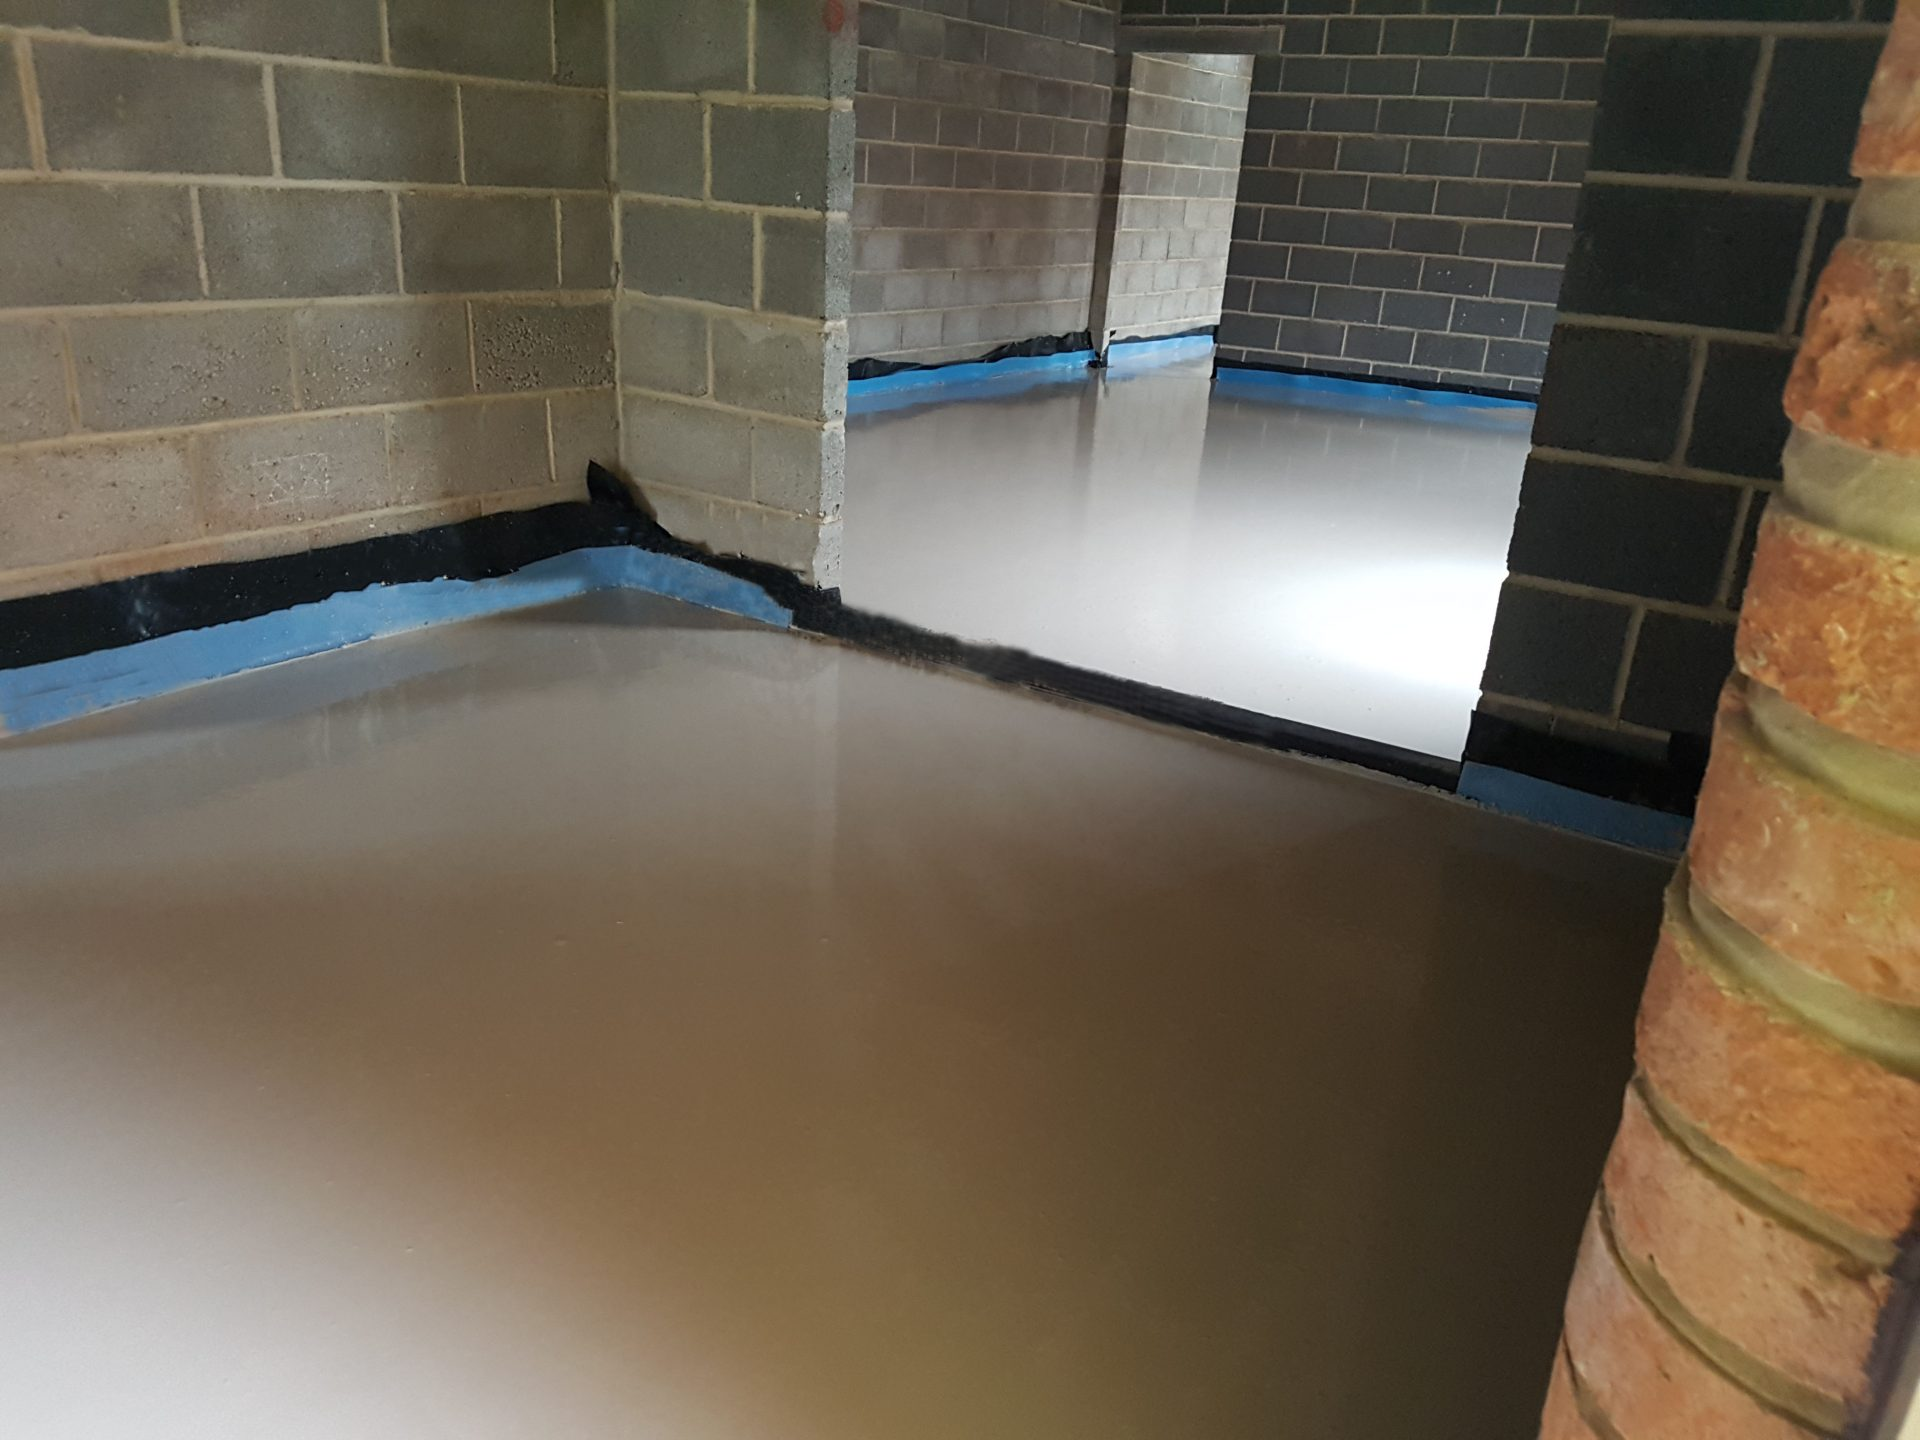 Retford Pump Screed